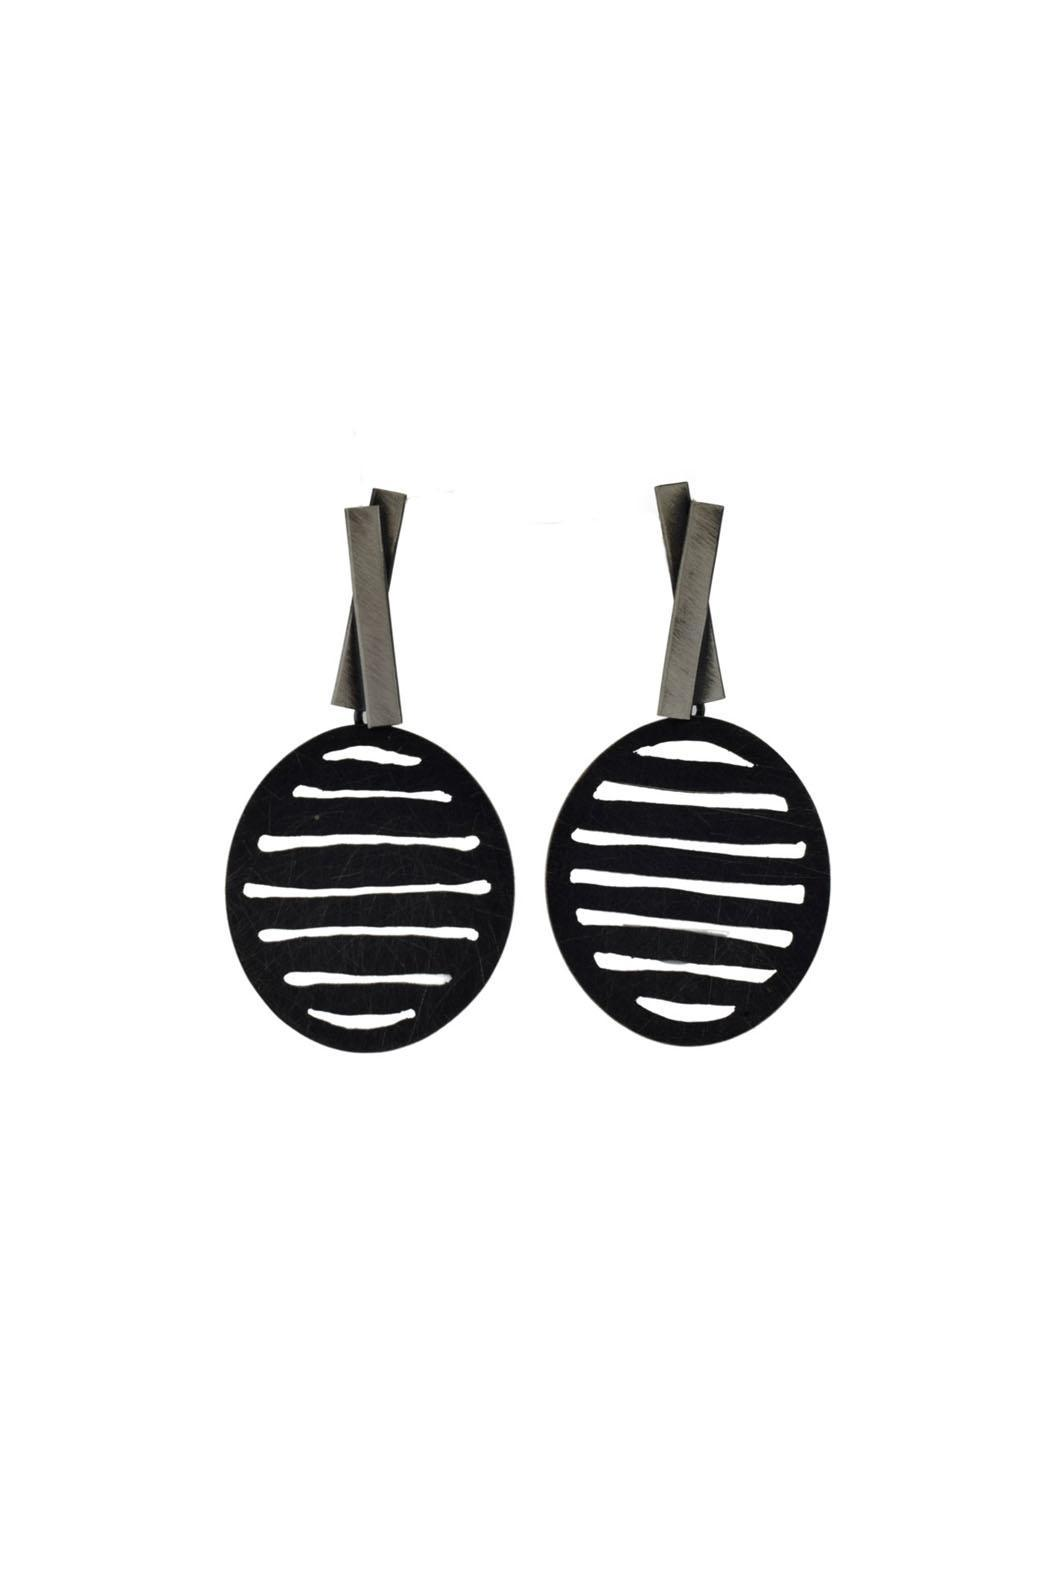 Terri Logan Screen Earrings from Oregon by Silverado